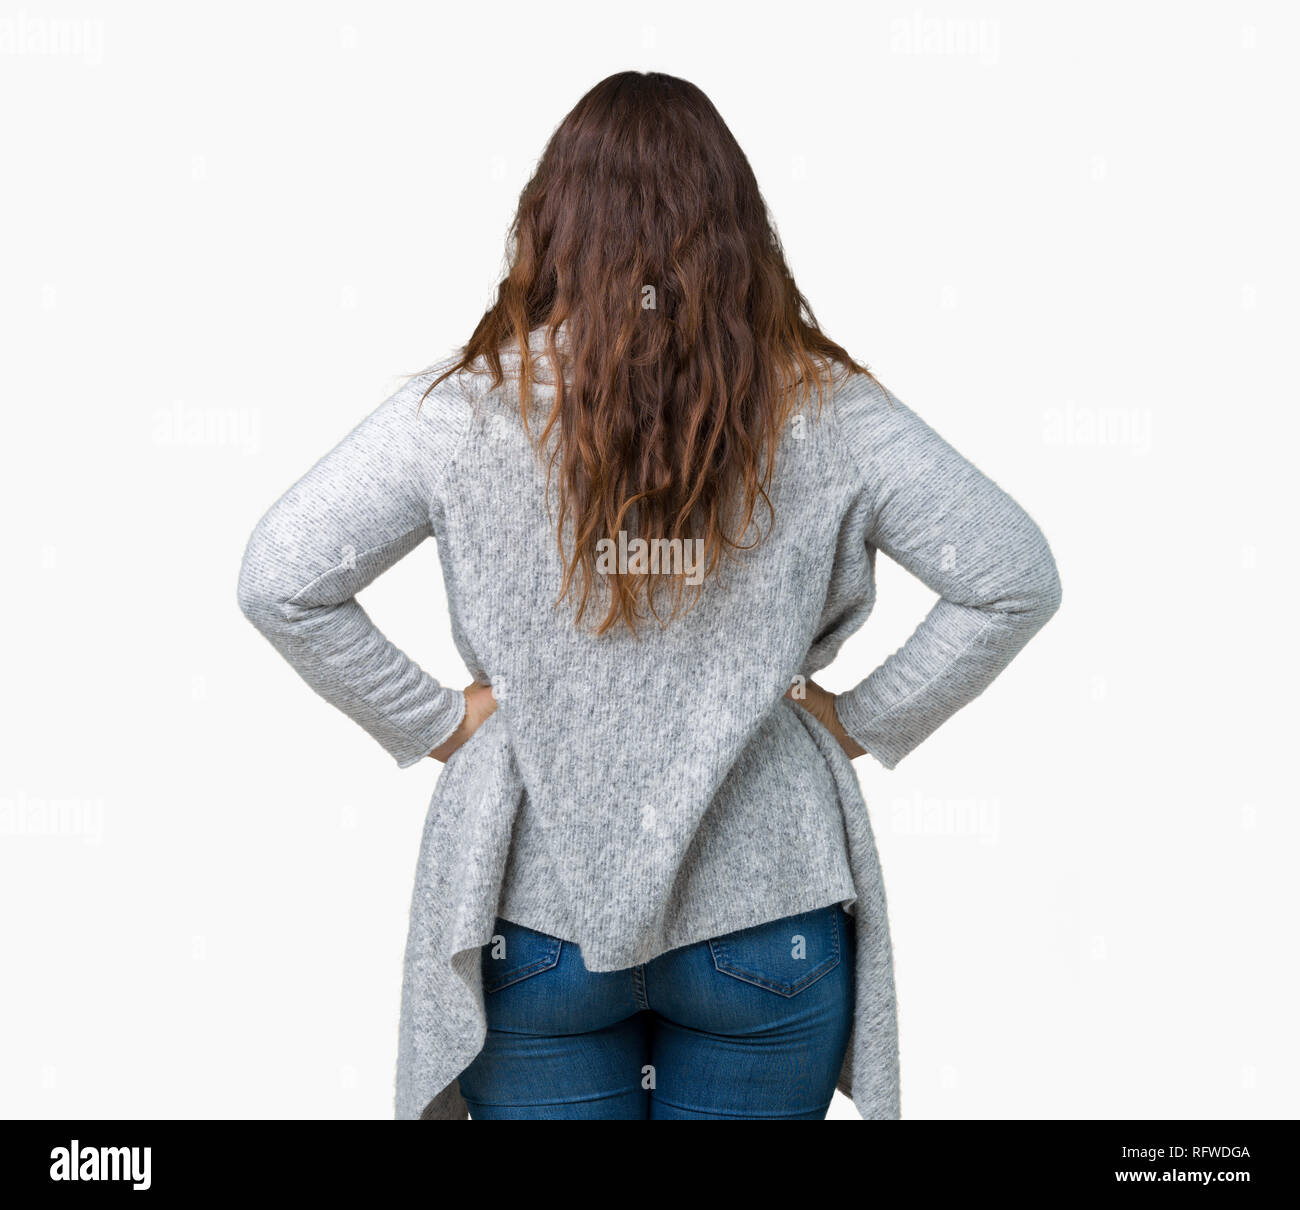 Beautiful plus size young woman wearing winter jacket over isolated background standing backwards looking away with arms on body - Stock Image